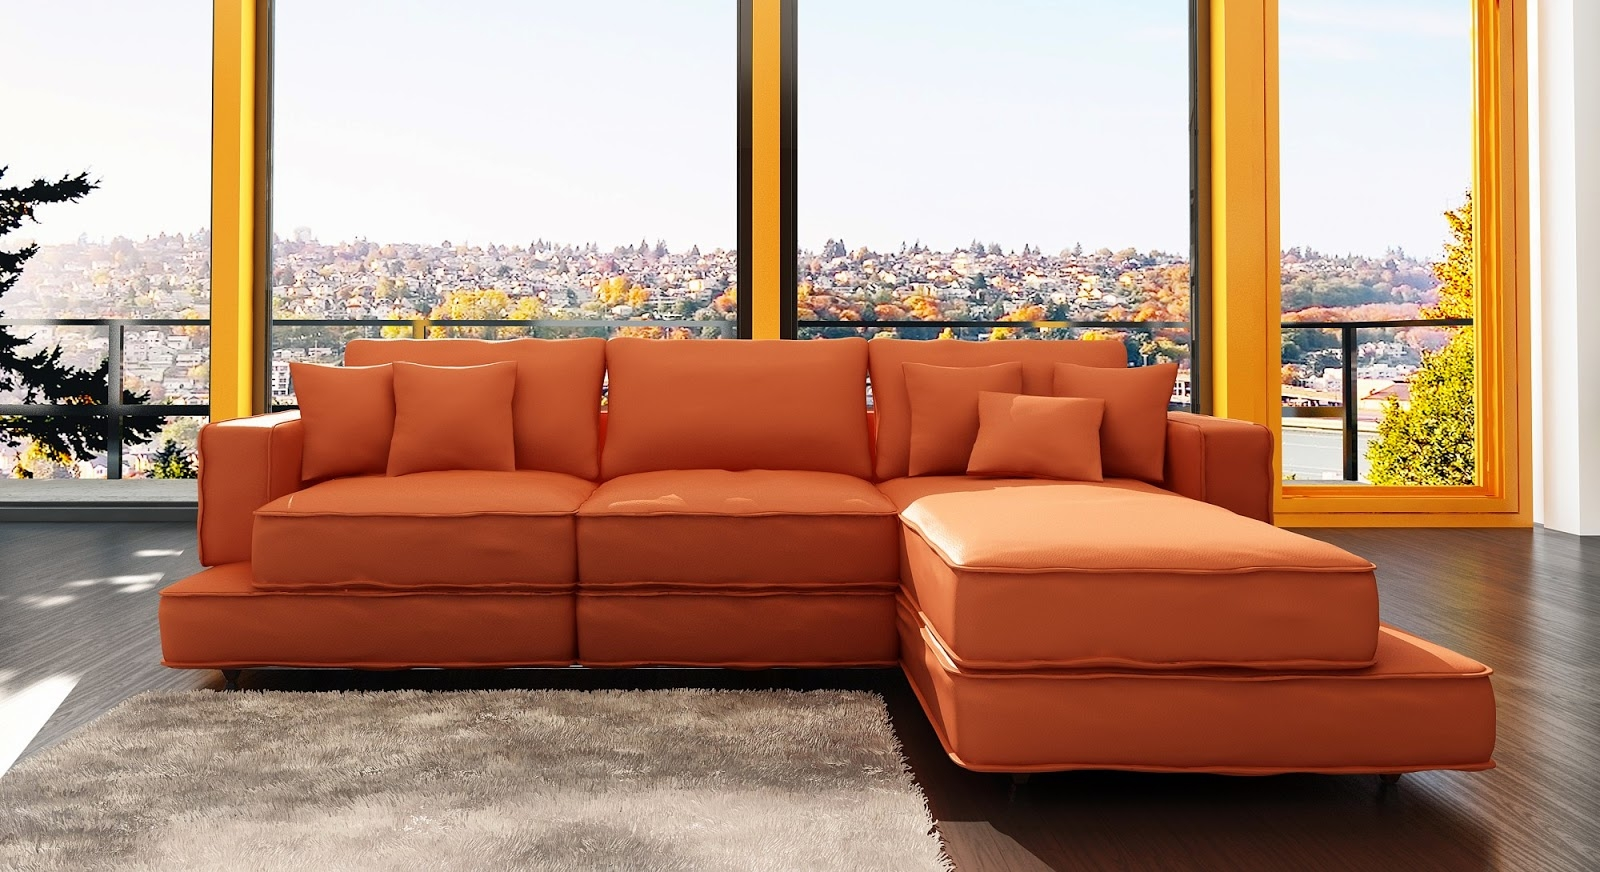 Orange Sofa Modern Home Design For Orange Sofa Chairs (Image 14 of 15)